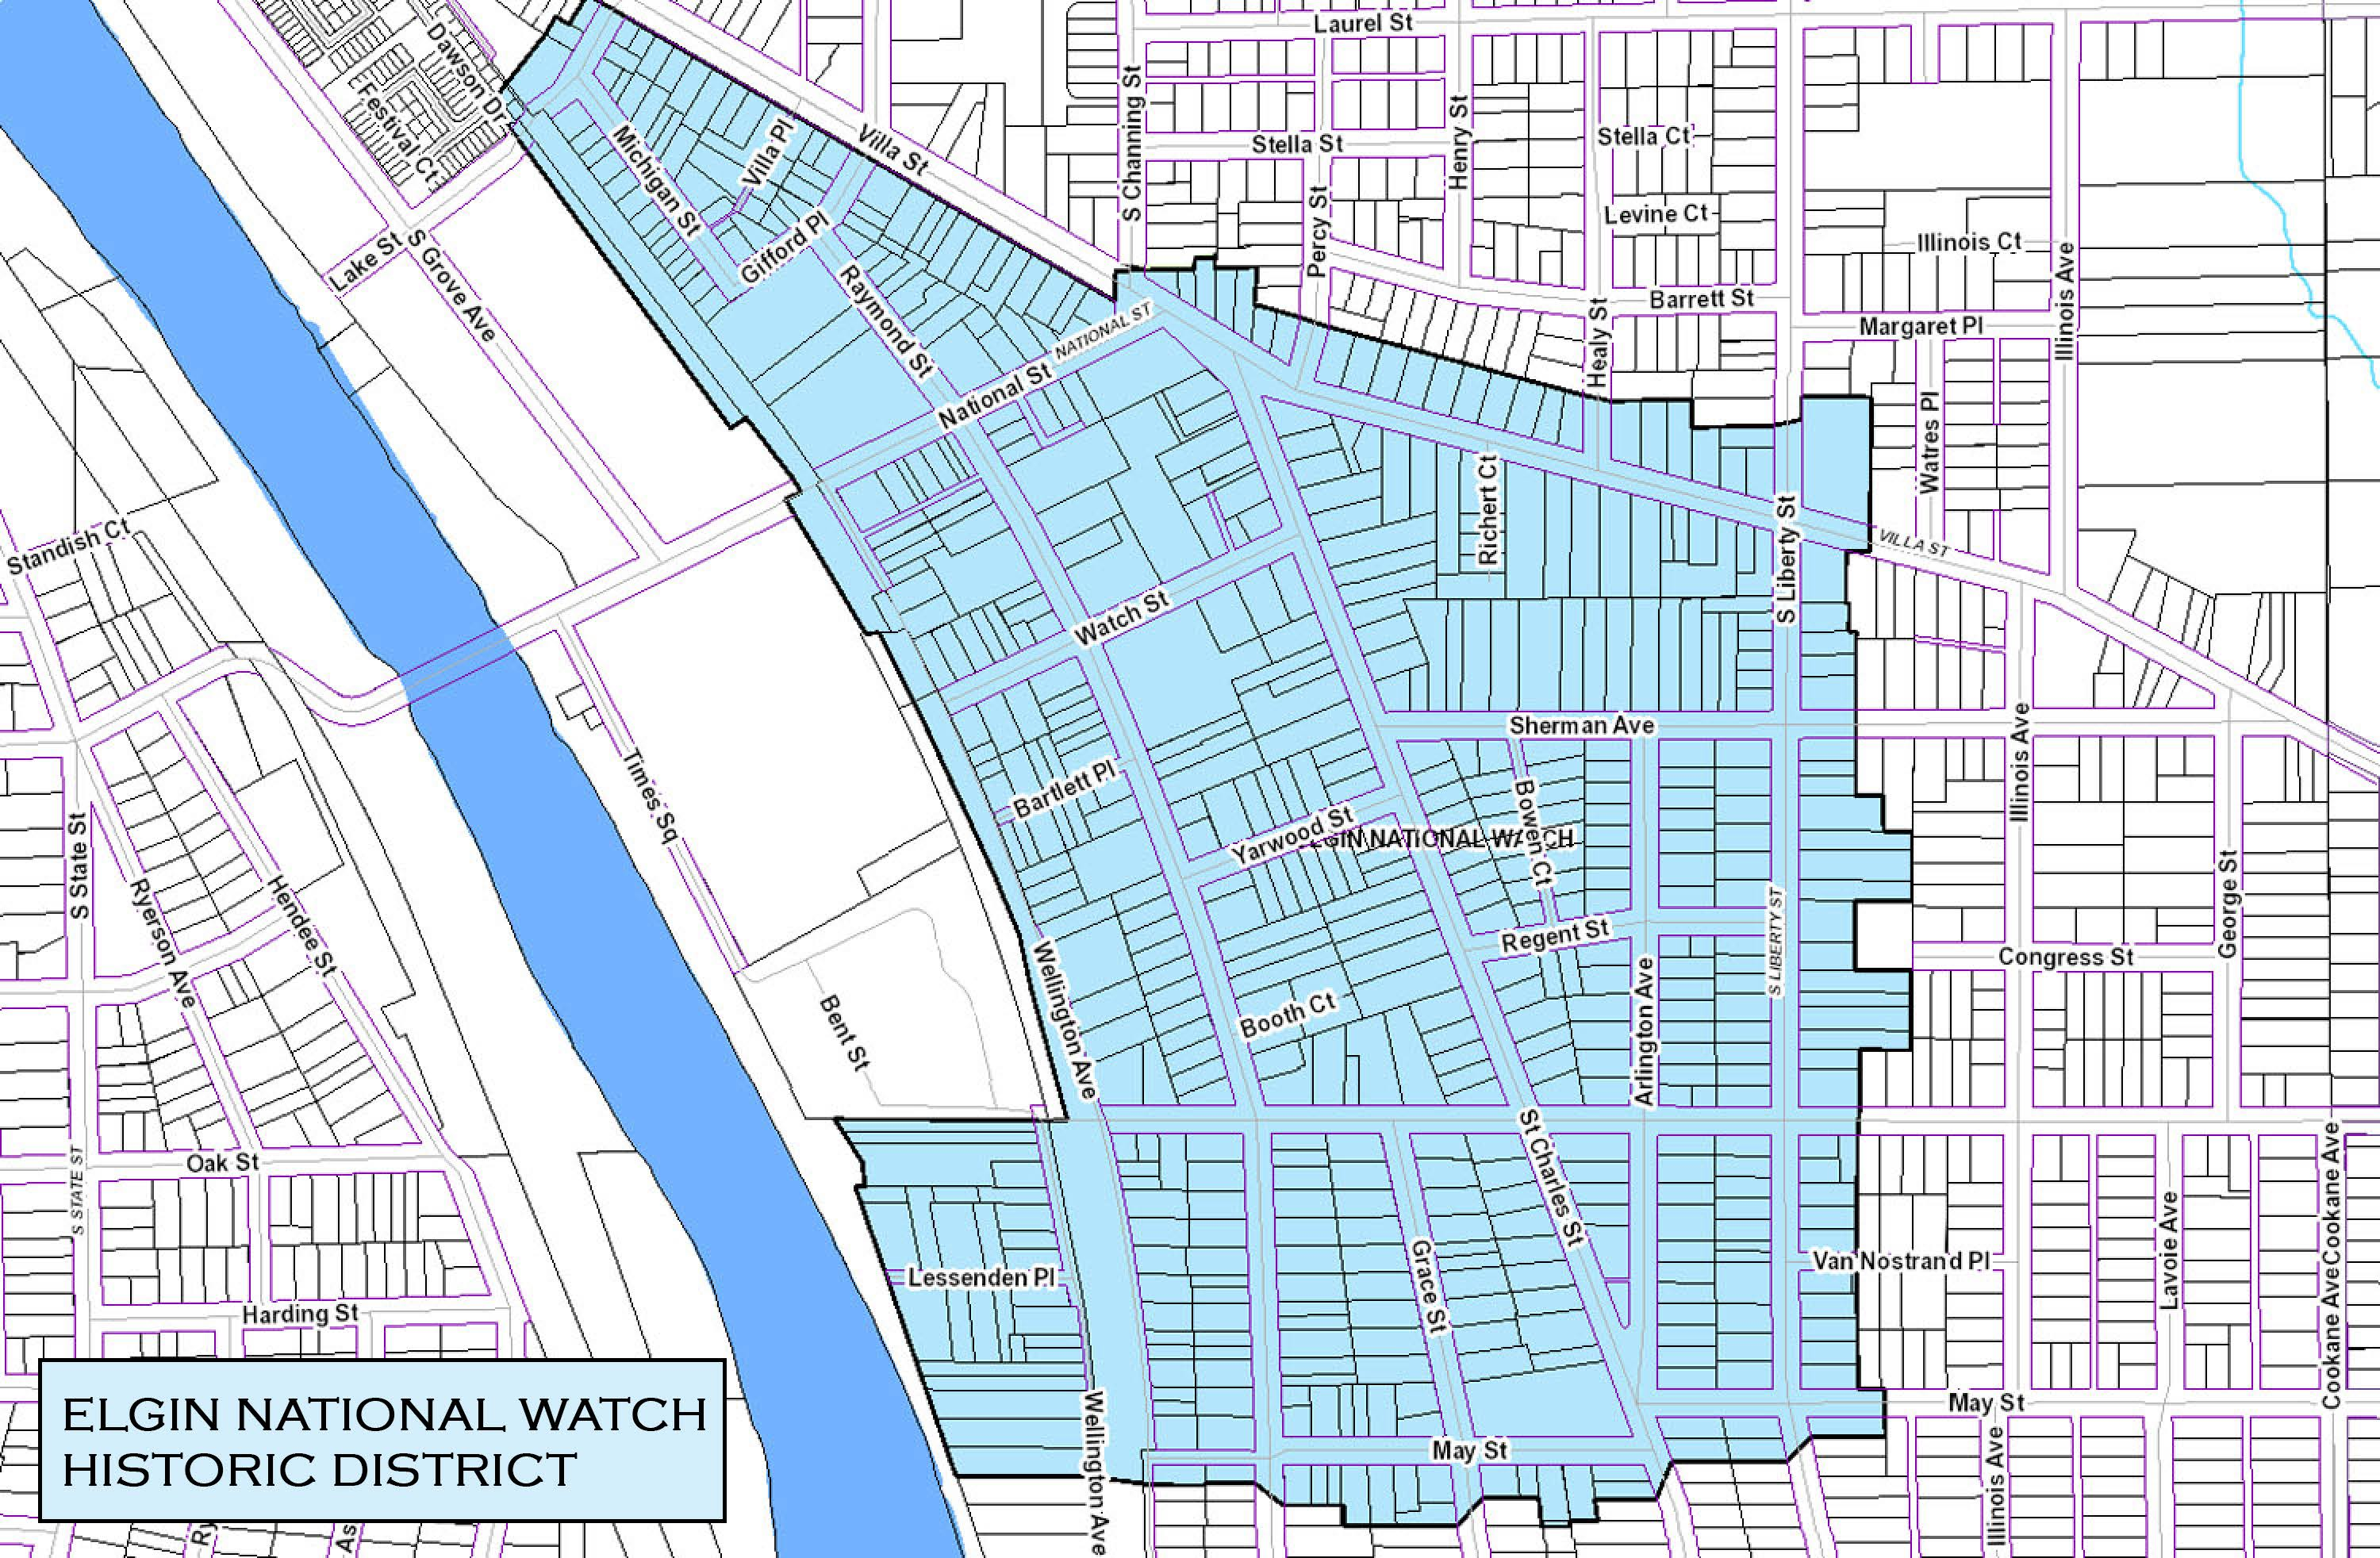 Elgin National Watch Historic District Map